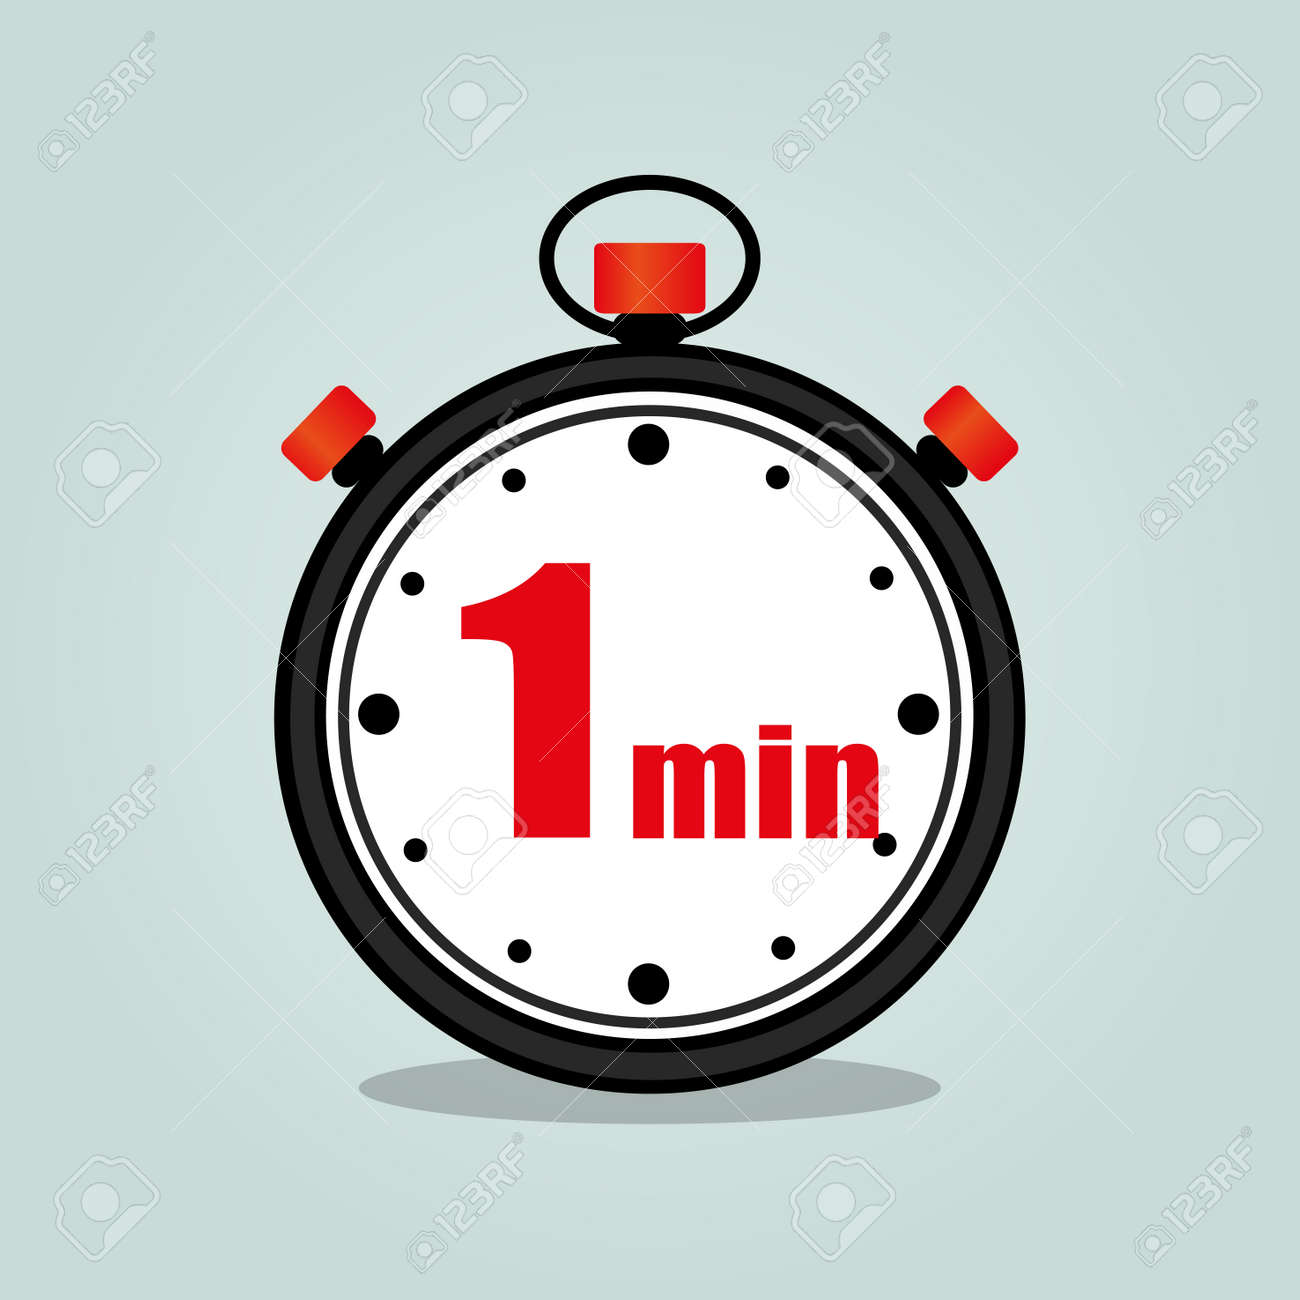 illustration of one minute stopwatch isolated icon royalty free